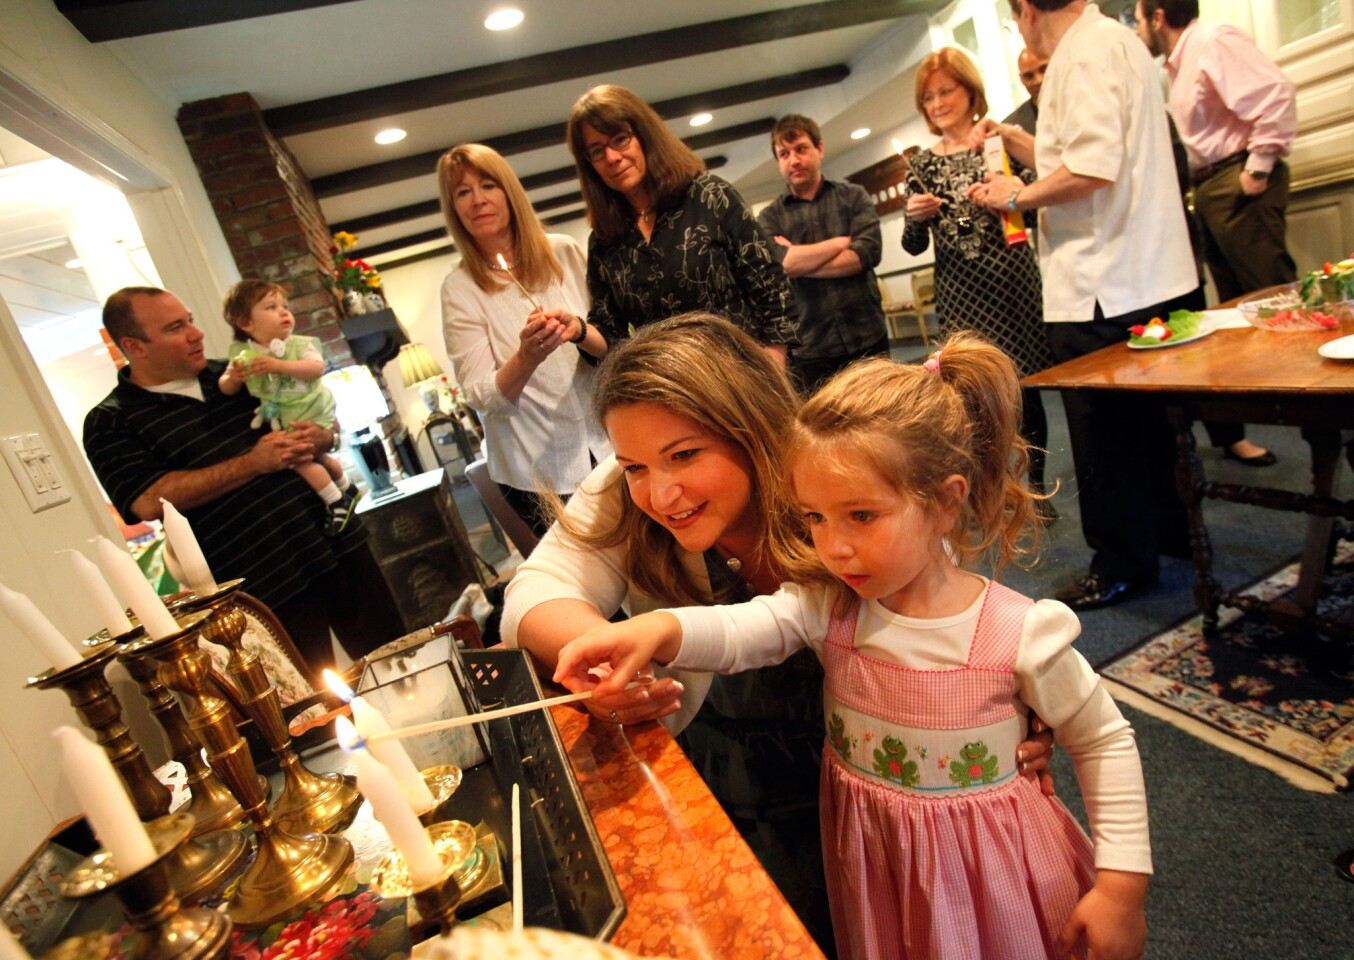 Havi Wolfson-Hall lights candles with her daughter Ellie before the Passover Seder at Ron and Susie Wolfson's home in Encino.